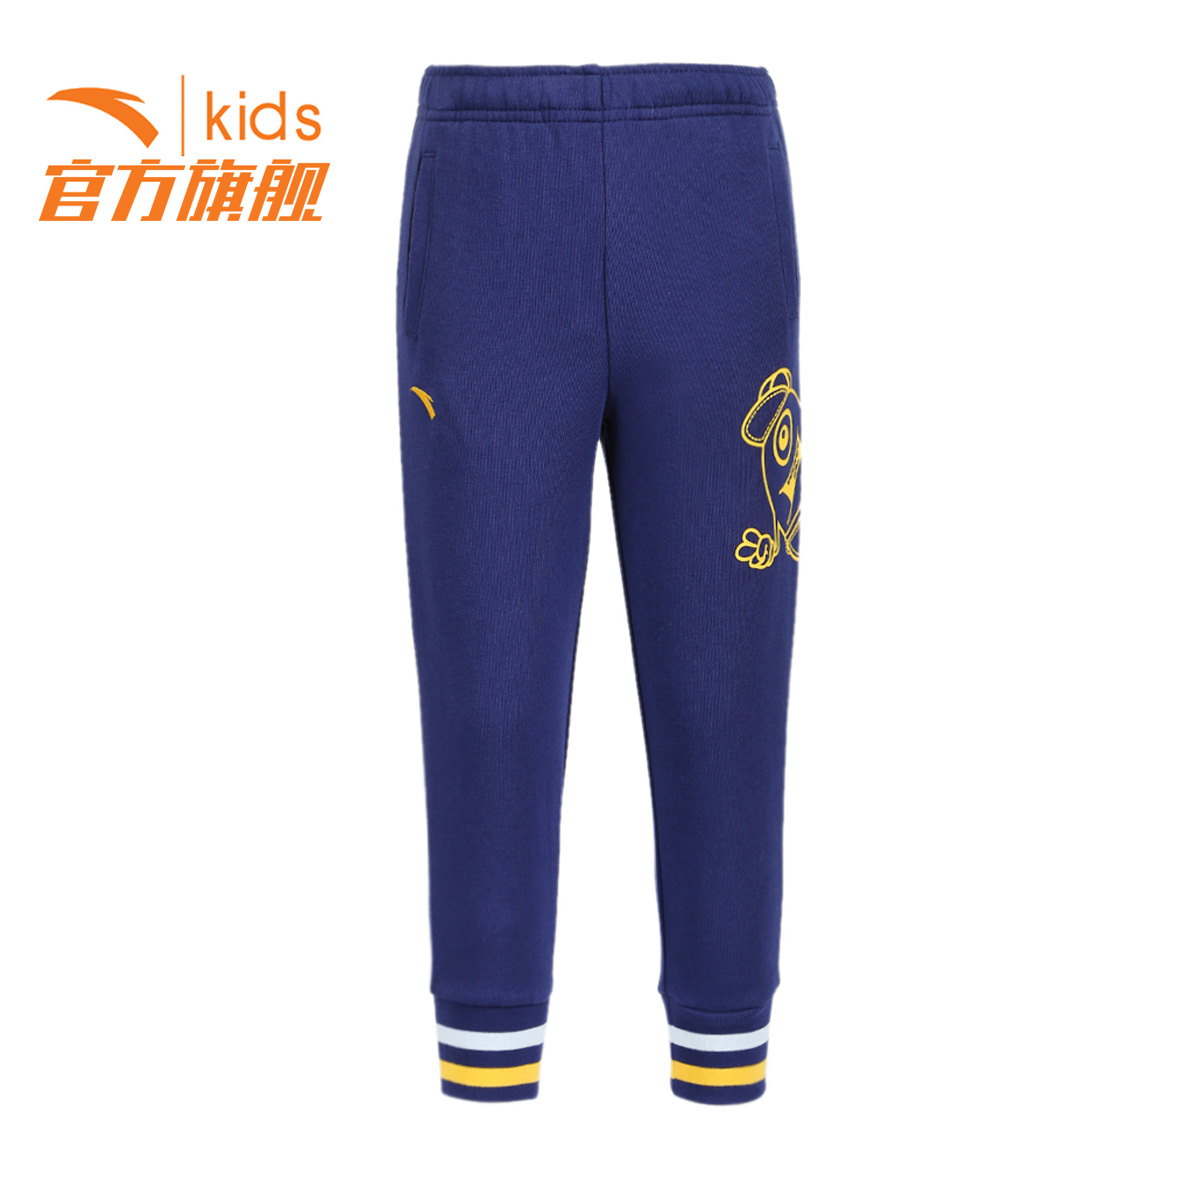 Anta kids boy pants years old small boy pants loose trousers casual pants baby boy pants autumn paragraph